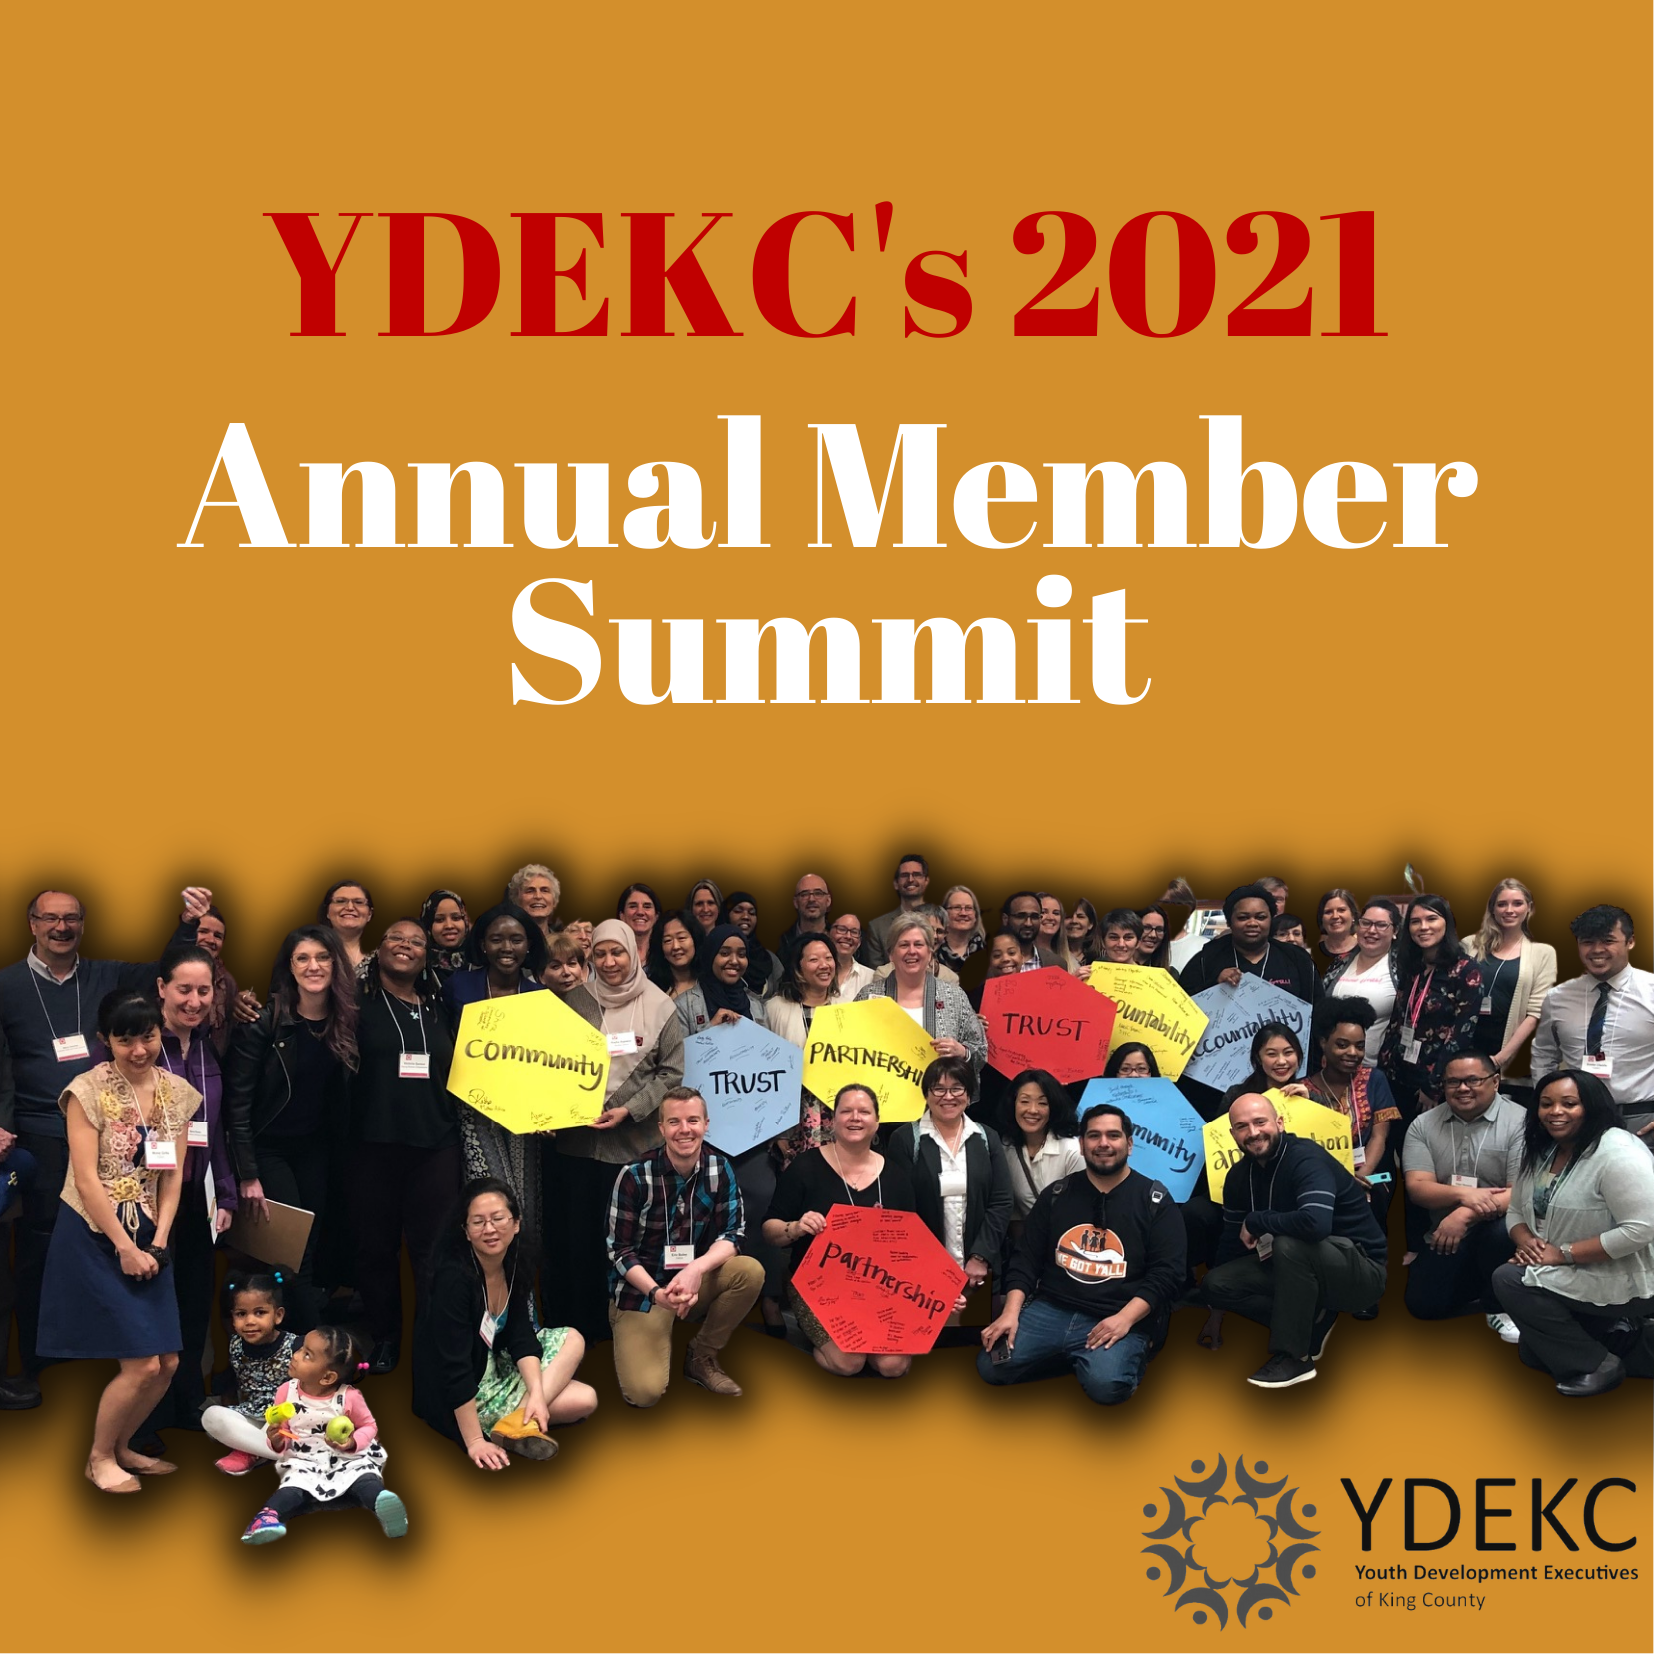 YDEKC's 2021 Annual Member Summit